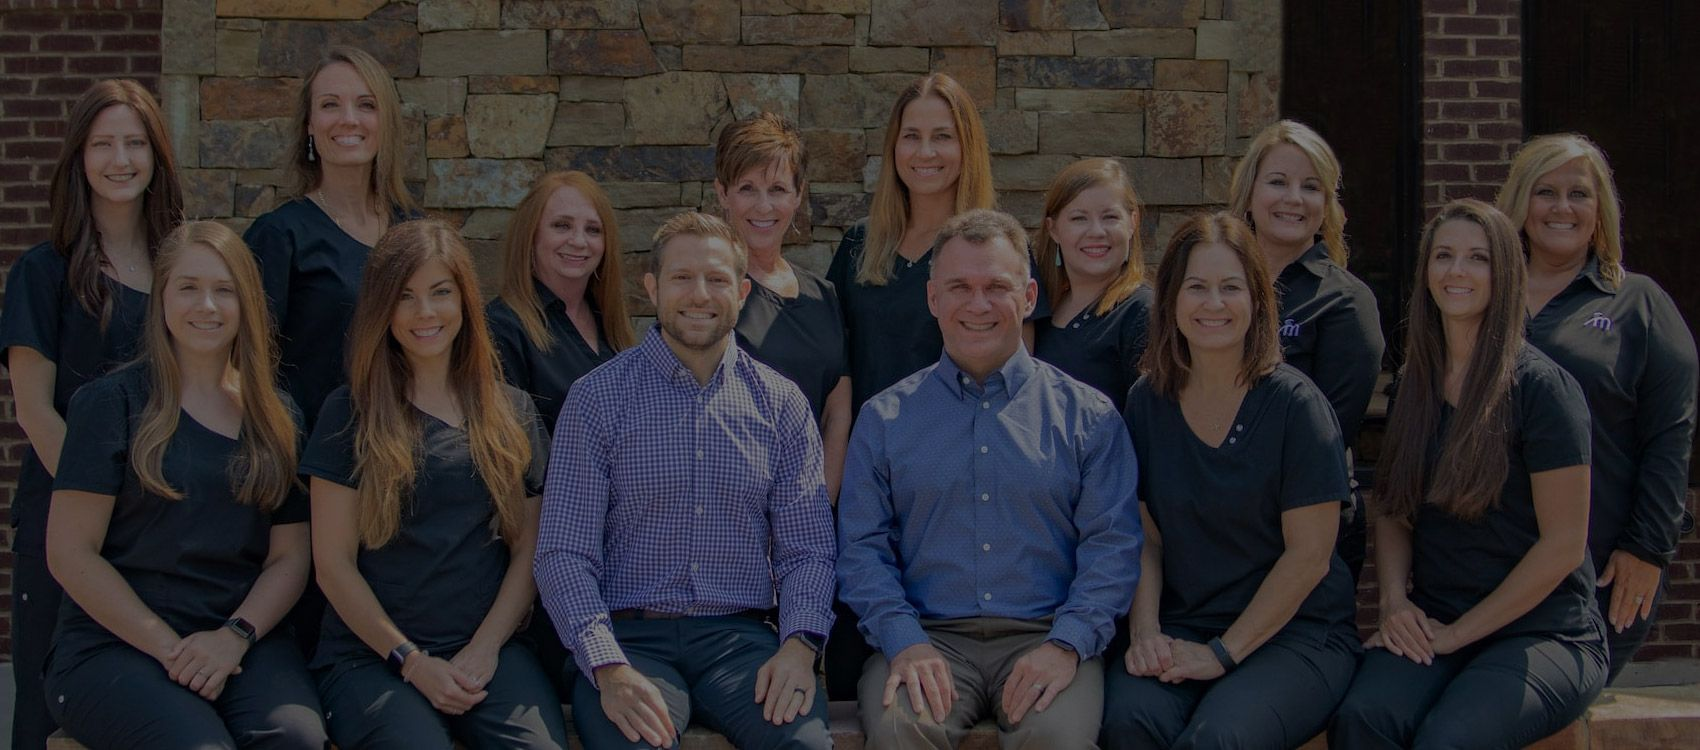 Meet the team at Knoxville Smiles